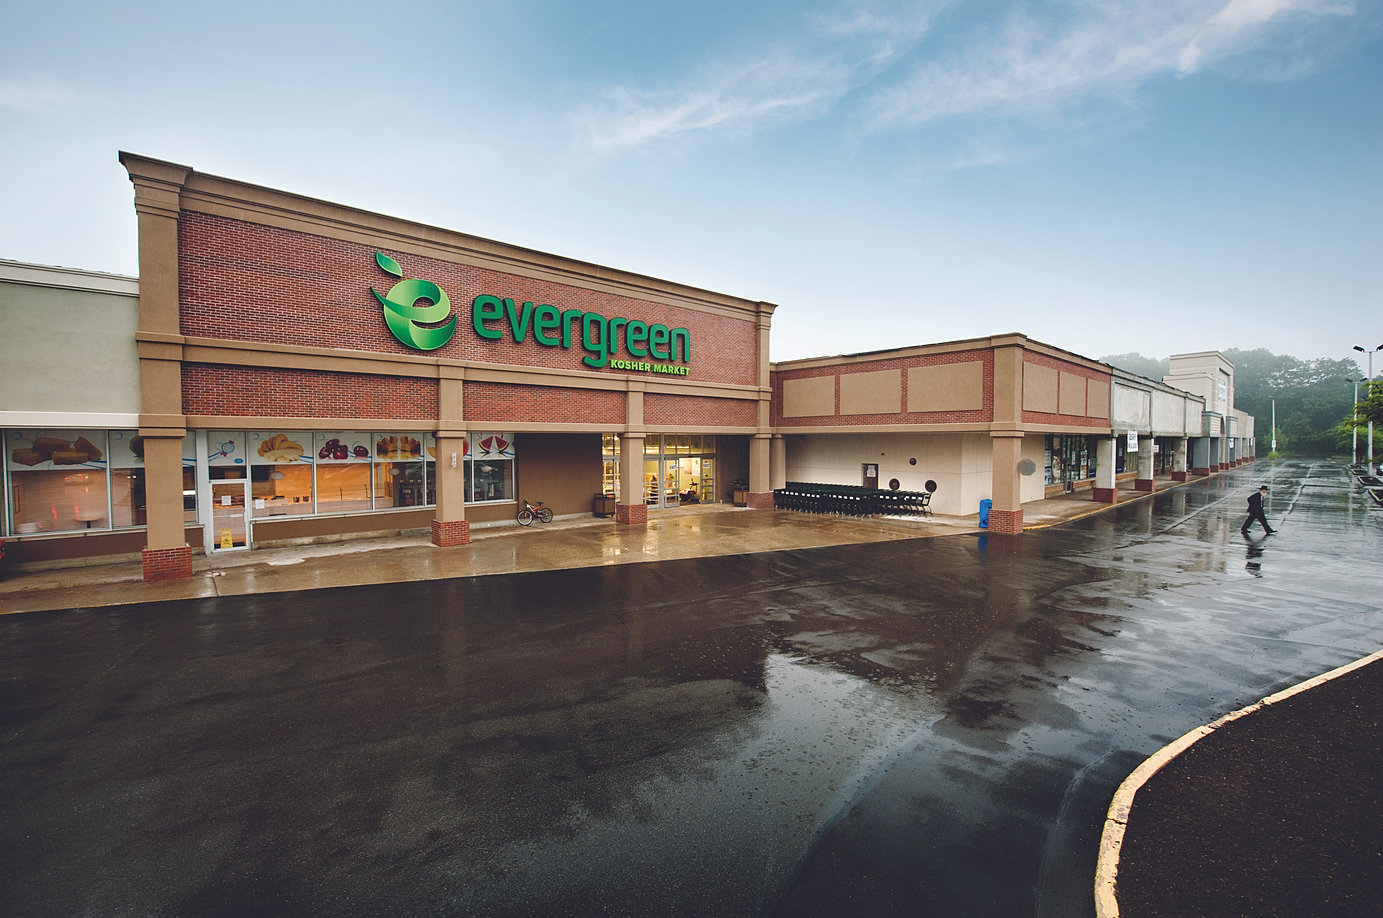 evergreen kosher market monsey kosher supermarket